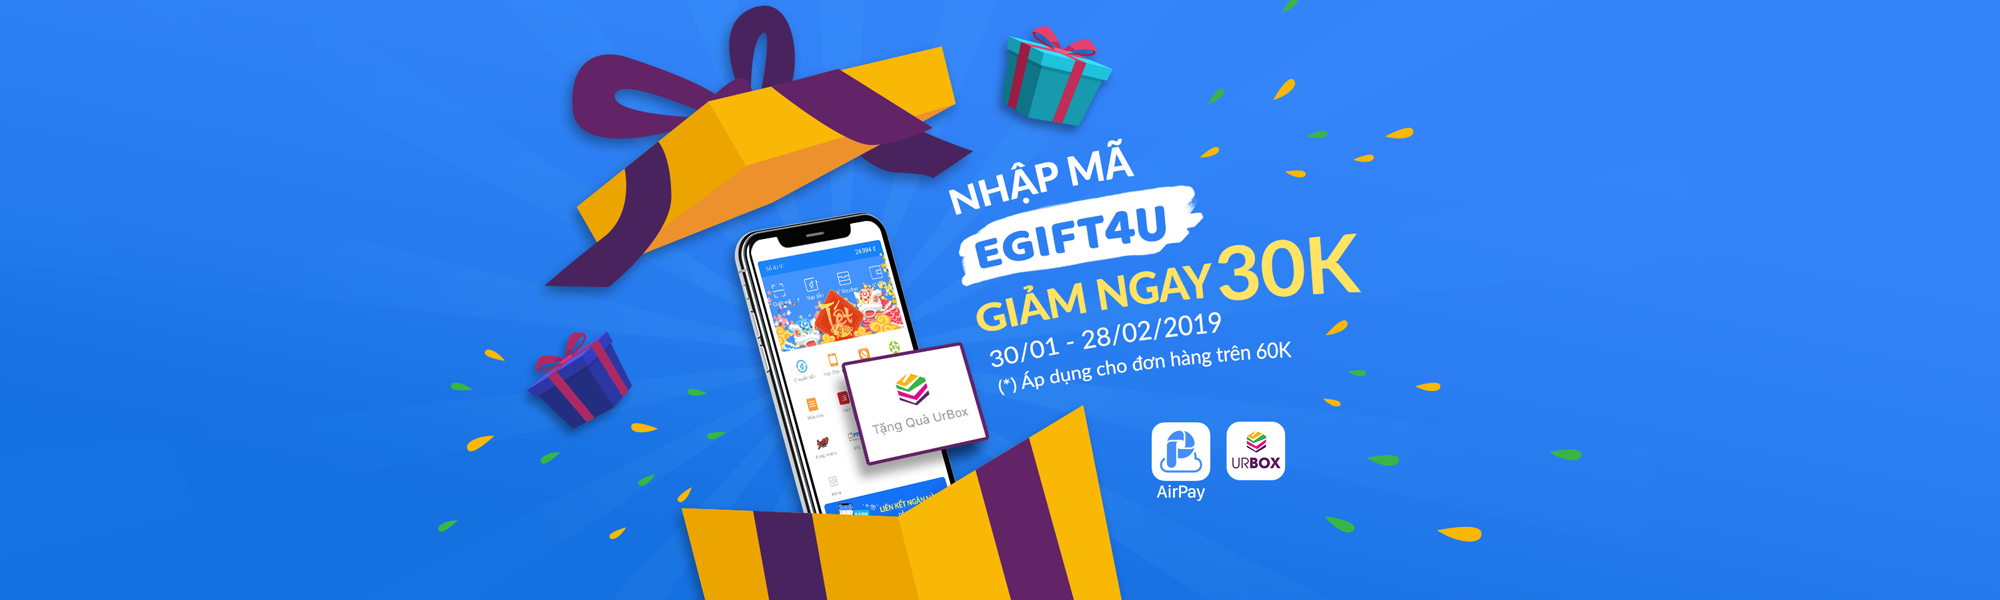 urbox-promotion-feb-2019